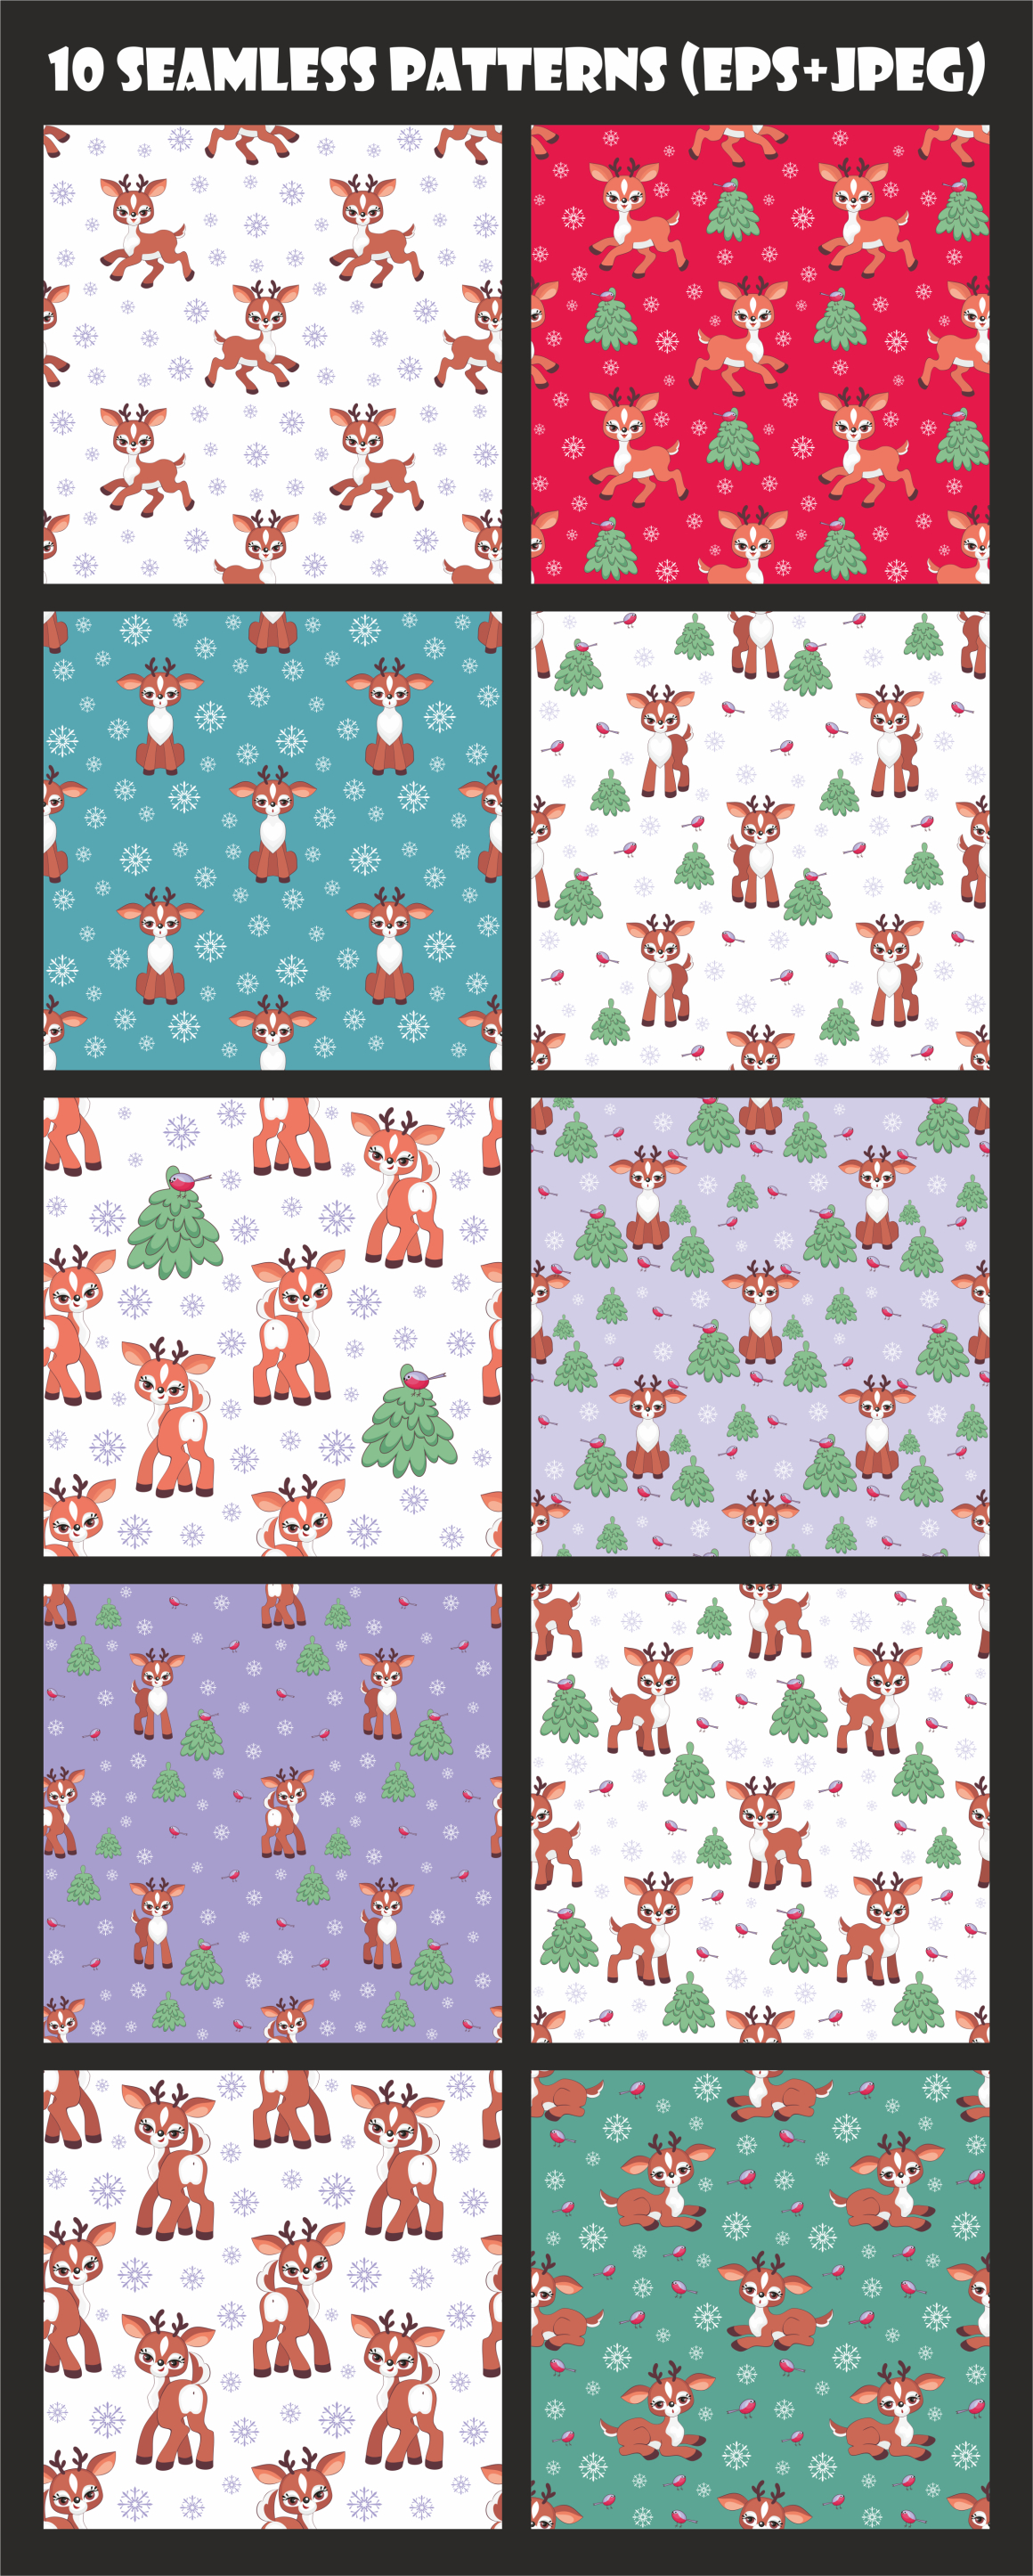 Cute Fawn. Set of Seamless Patterns Graphic By Olga Belova Image 2